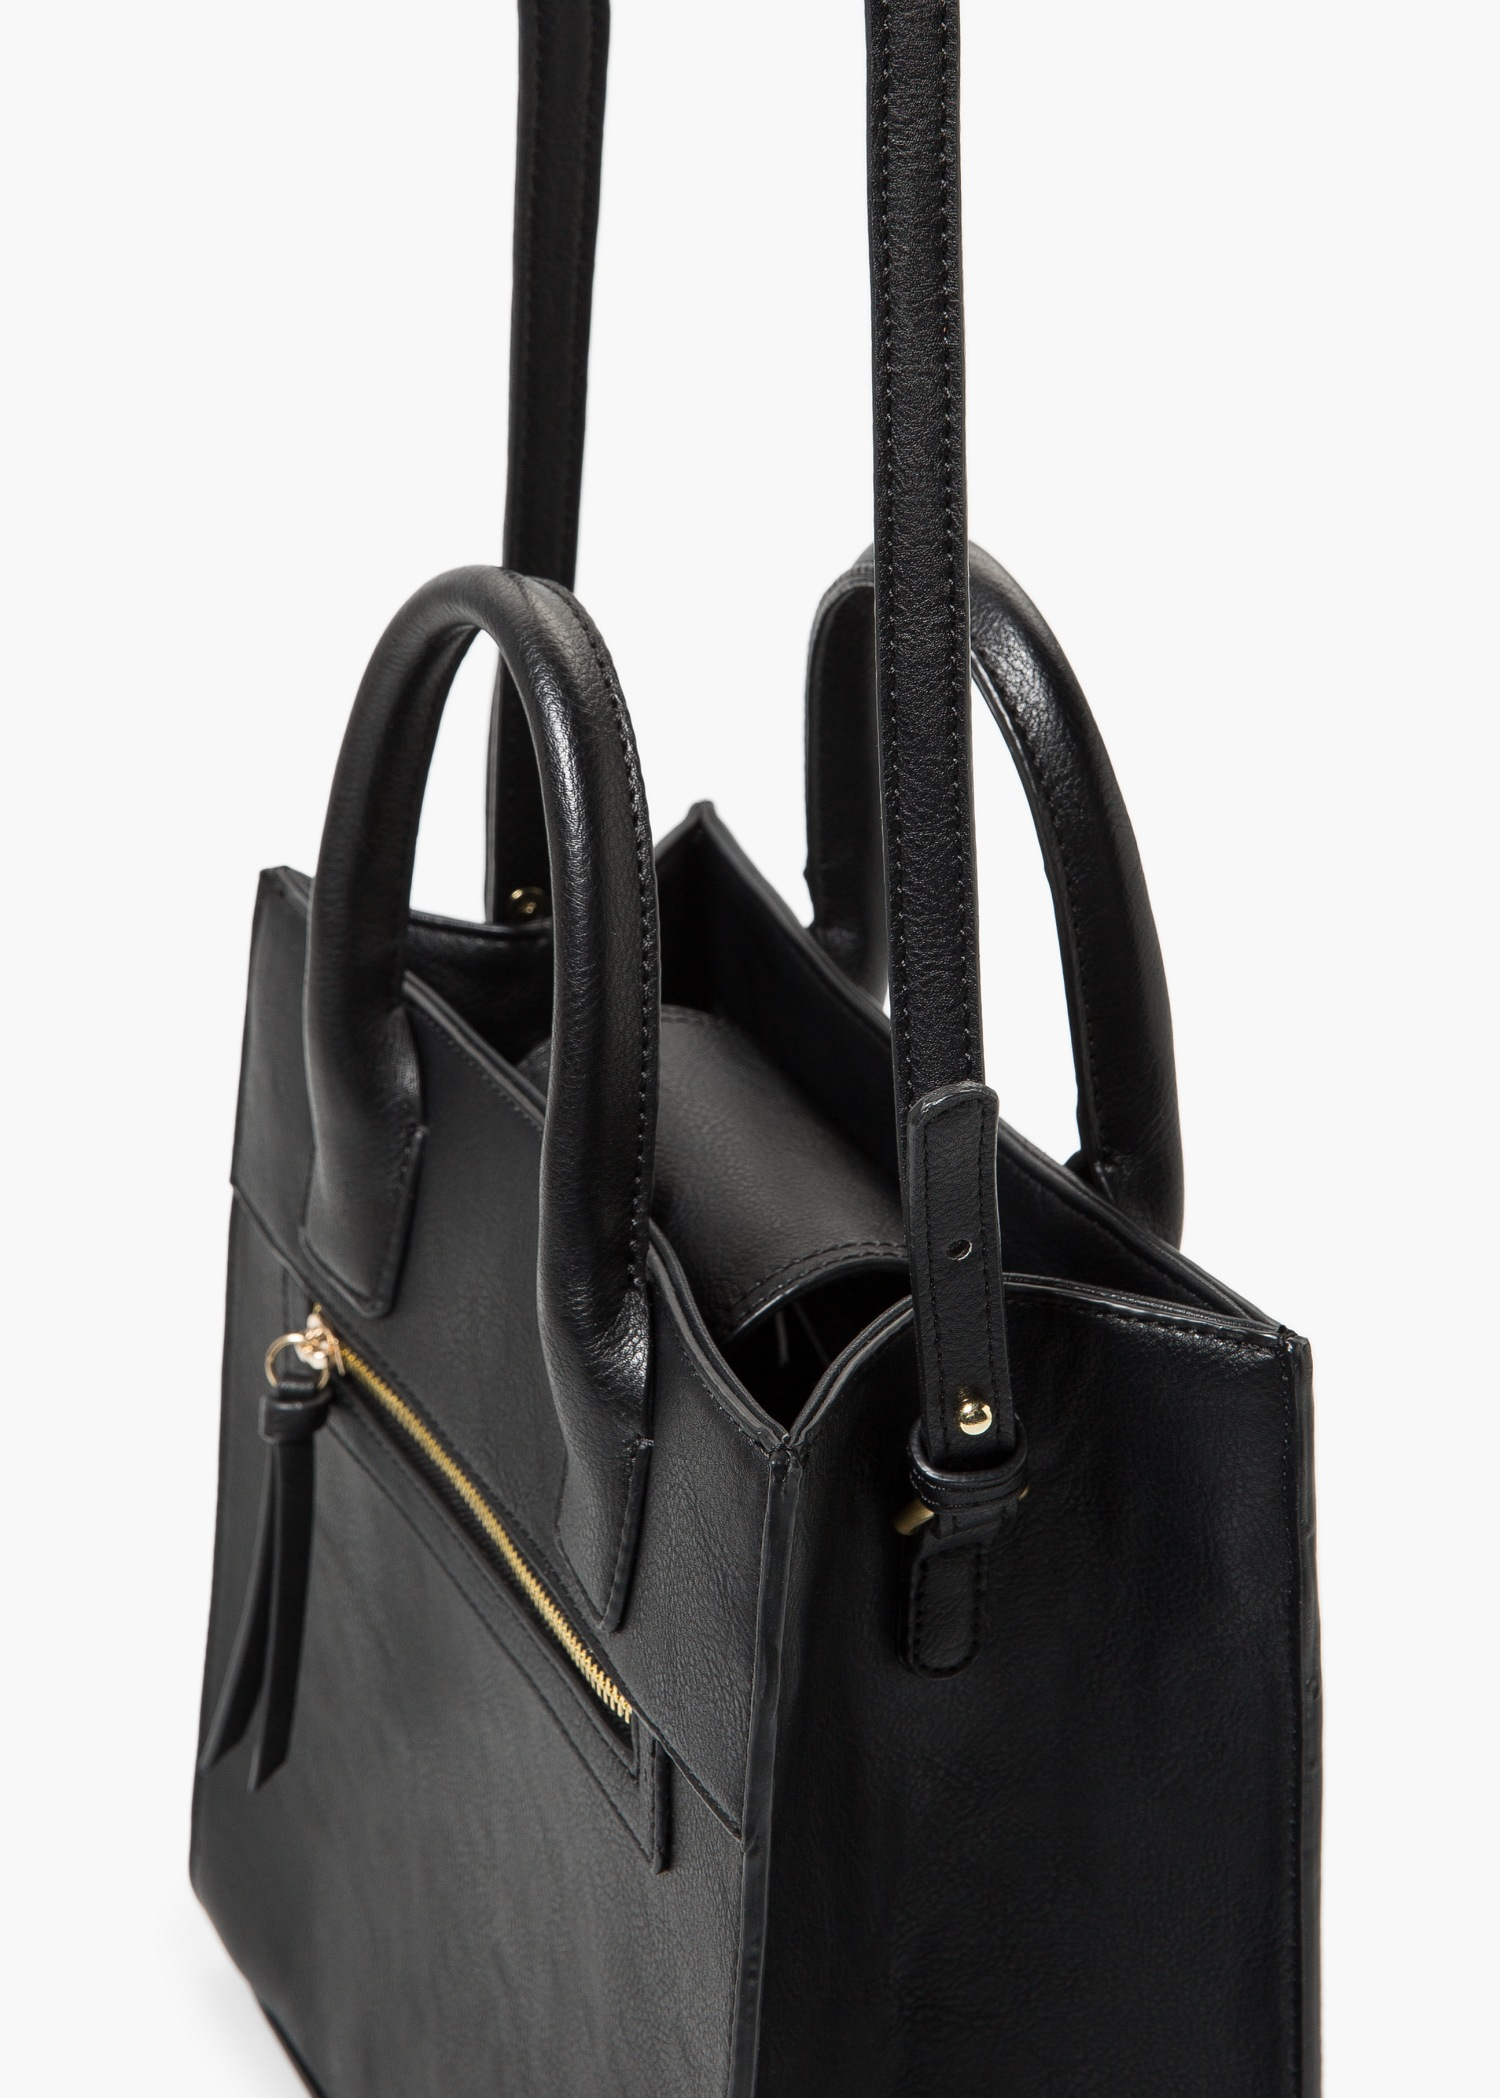 Lyst - Mango Zip Tote Bag in Black 8aab87ca6